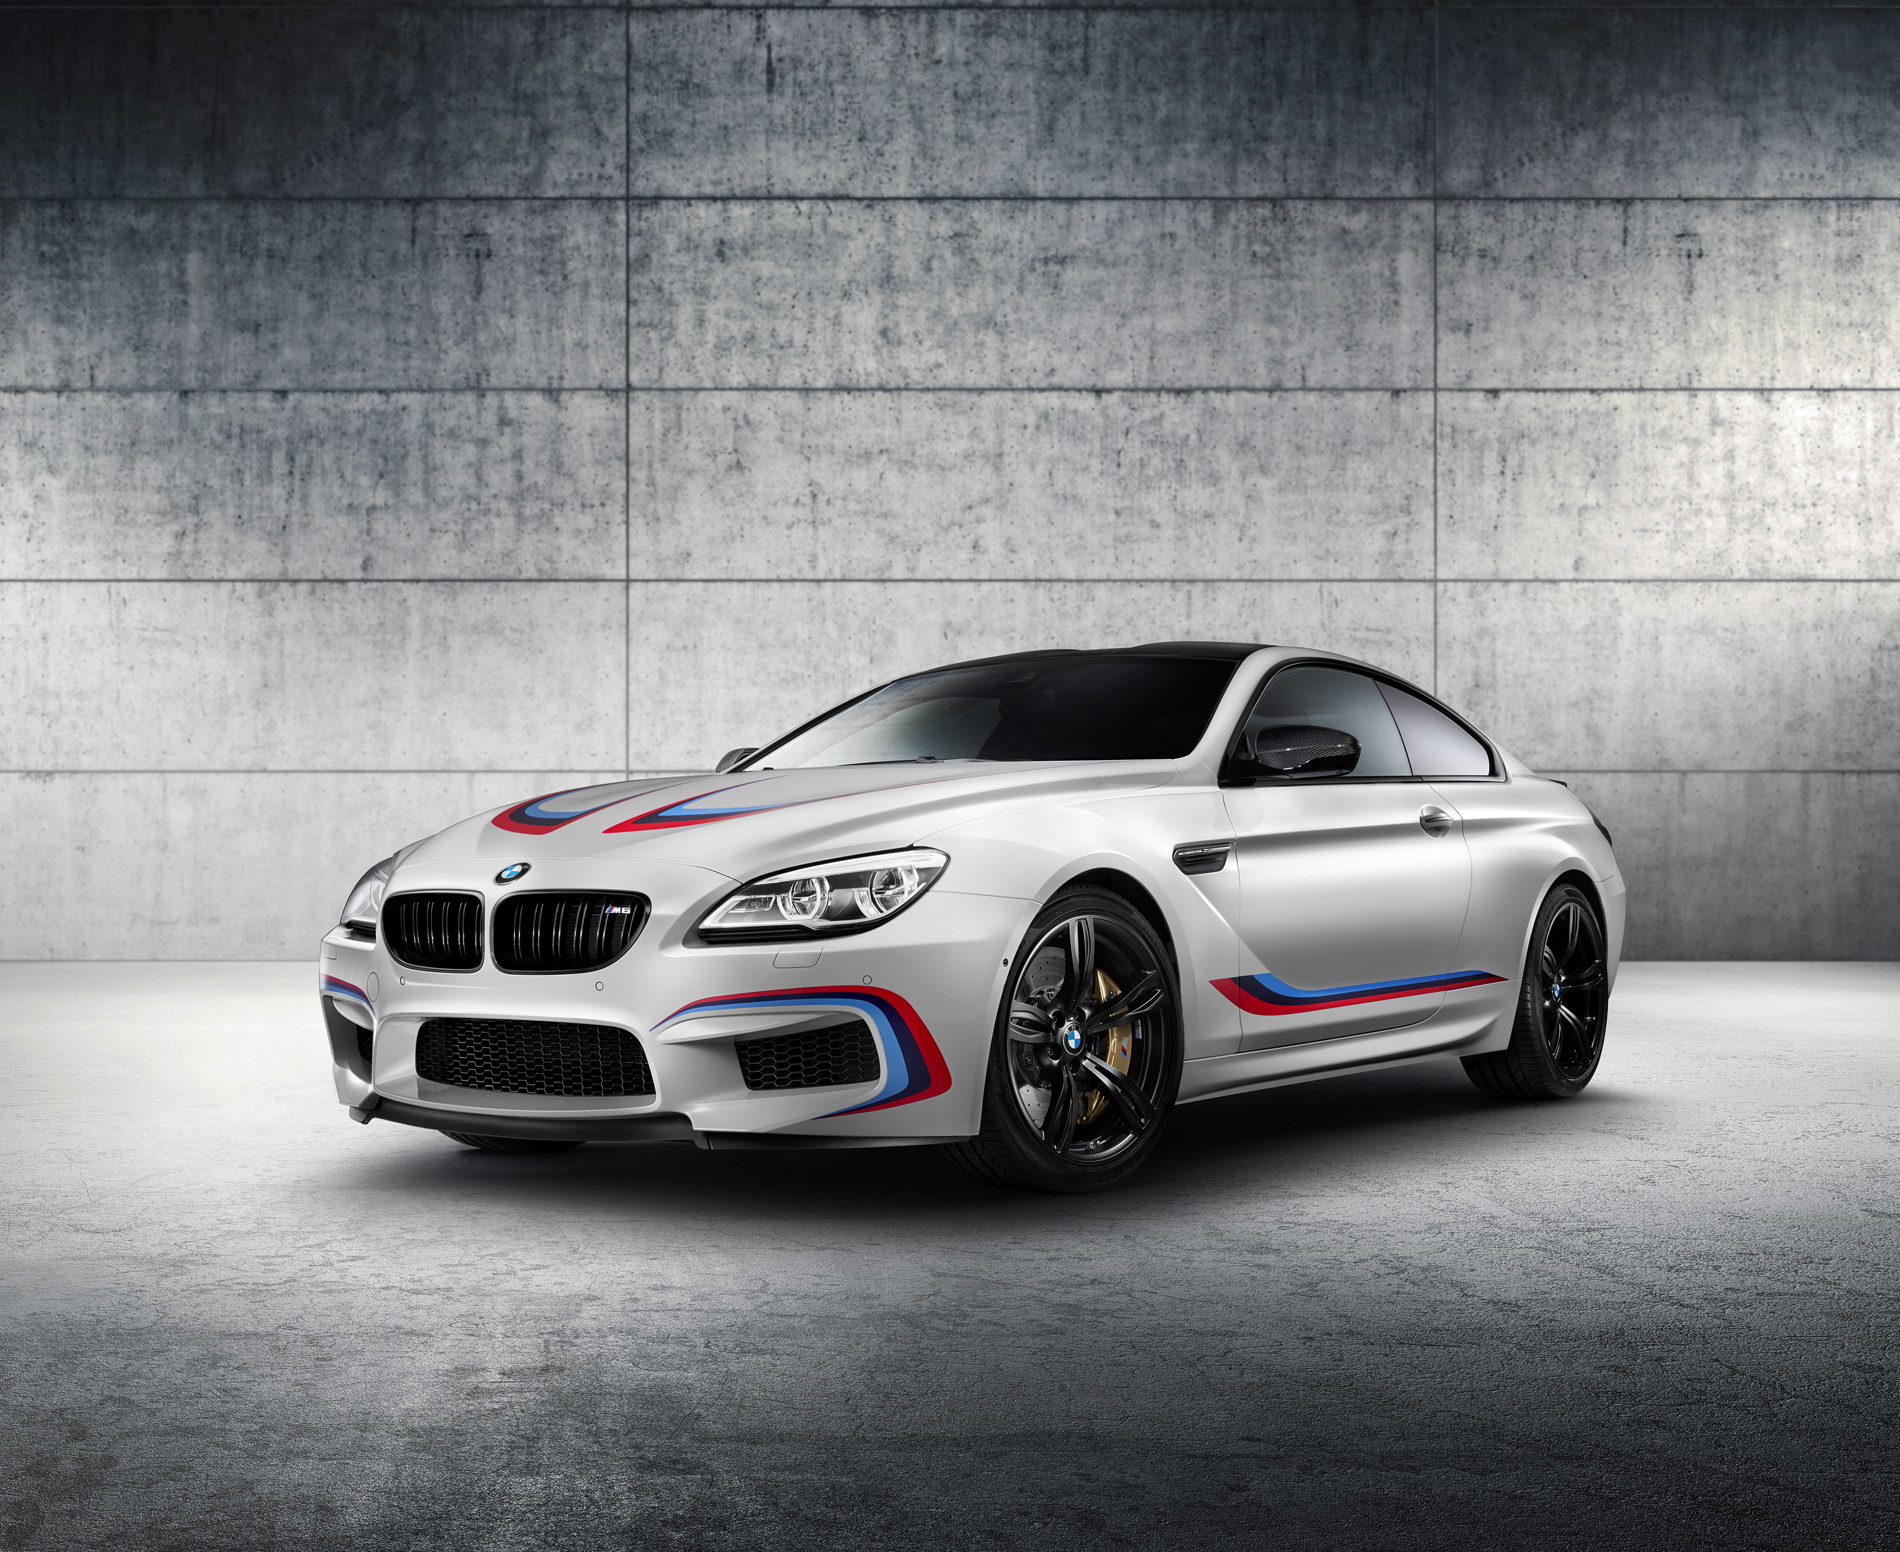 2016 bmw competition edition images 1900x 1200 05